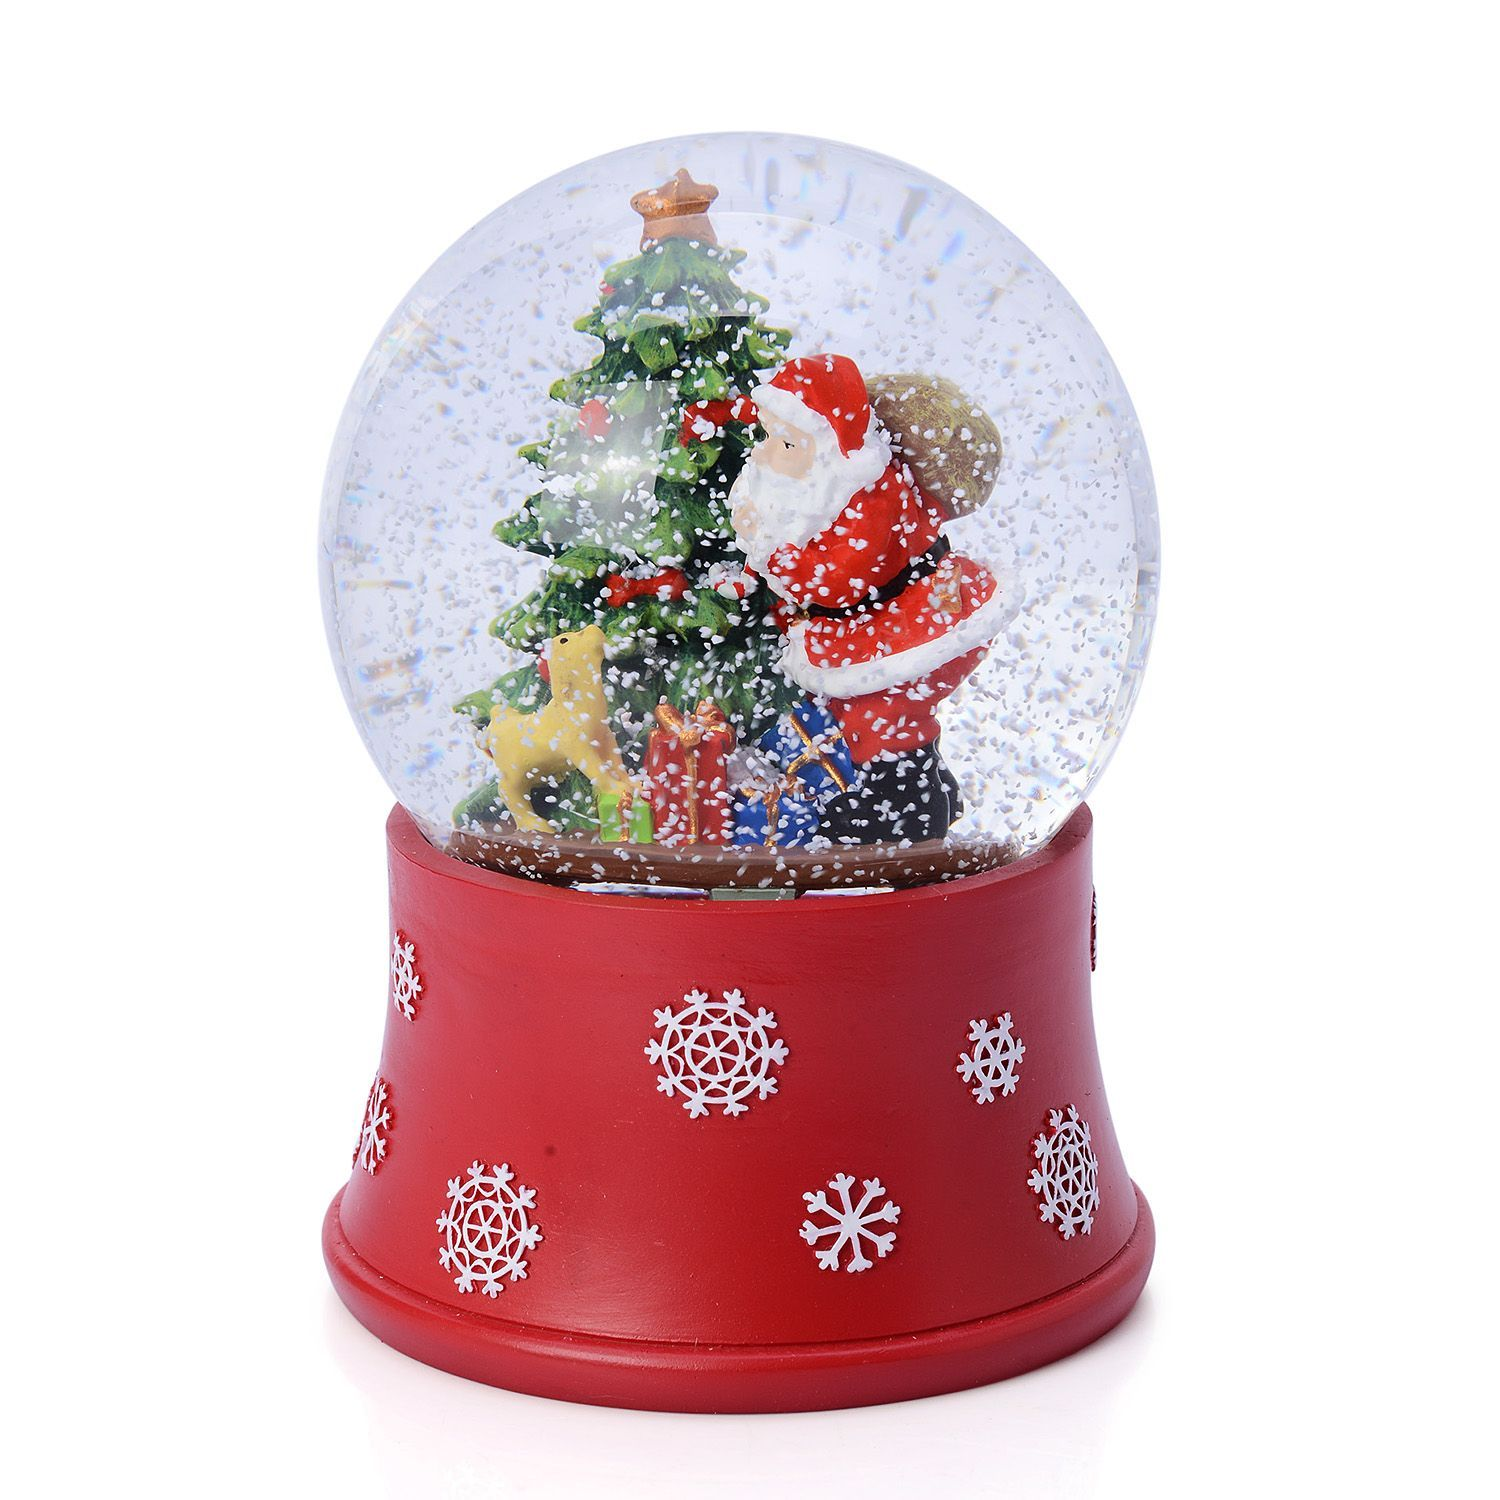 LED Light Santa Snowglobe with Automatic Snow Blower (6 in)